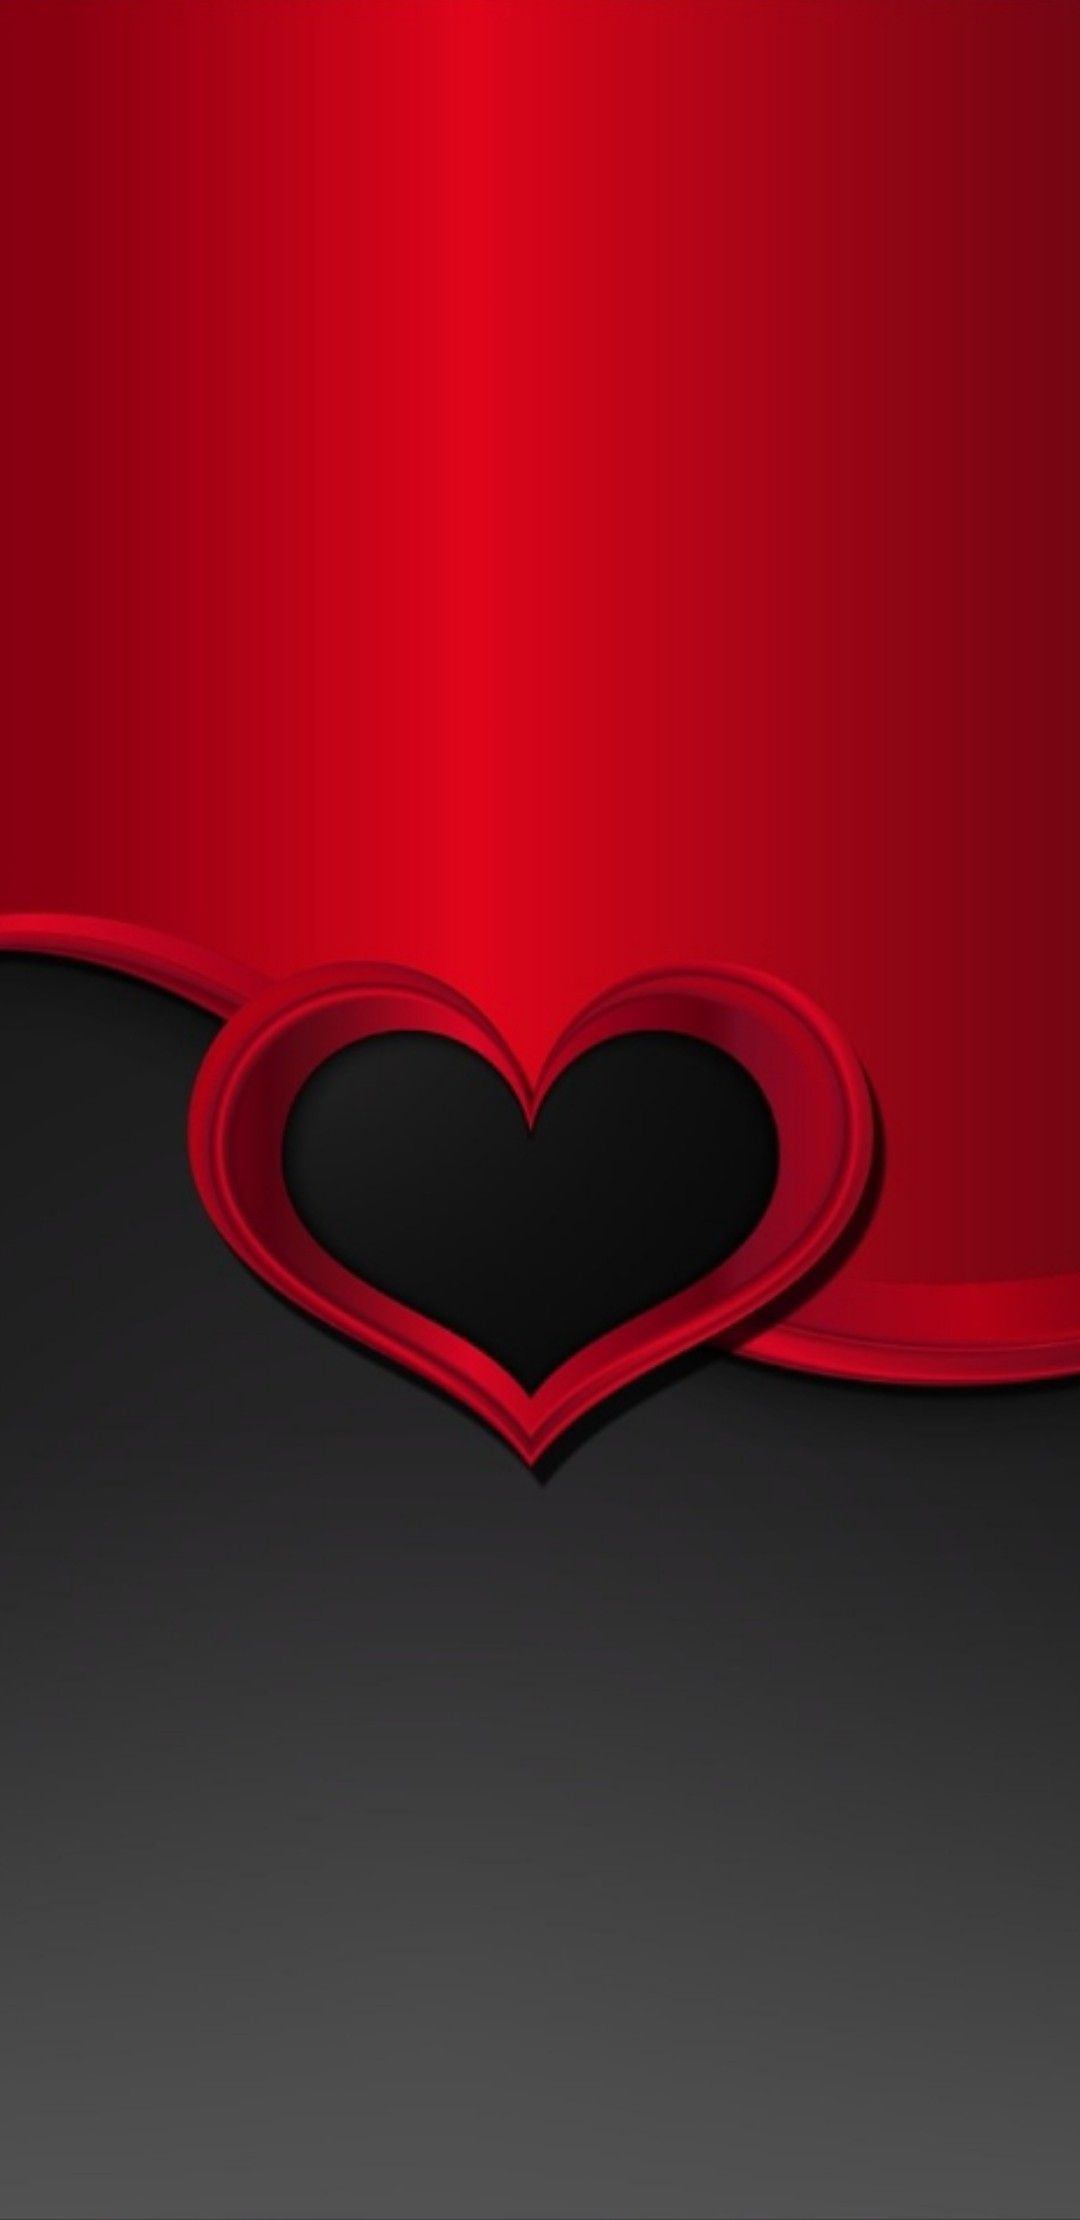 Wallpaper By Artist Unknown Heart Iphone Wallpaper Red Wallpaper Heart Wallpaper